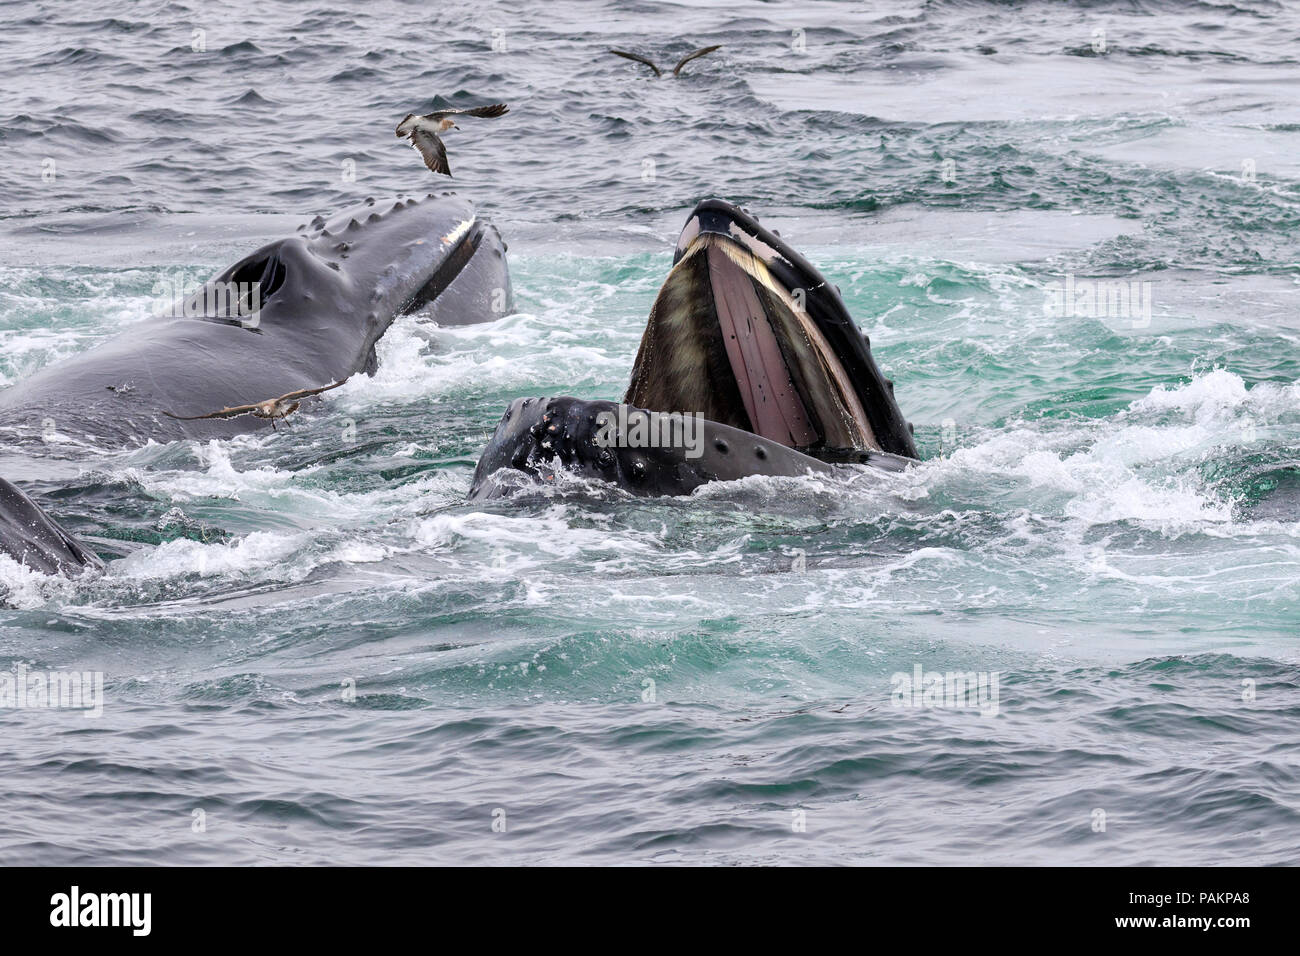 Humpback Whales, Cape Cod, Massachusetts Stock Photo